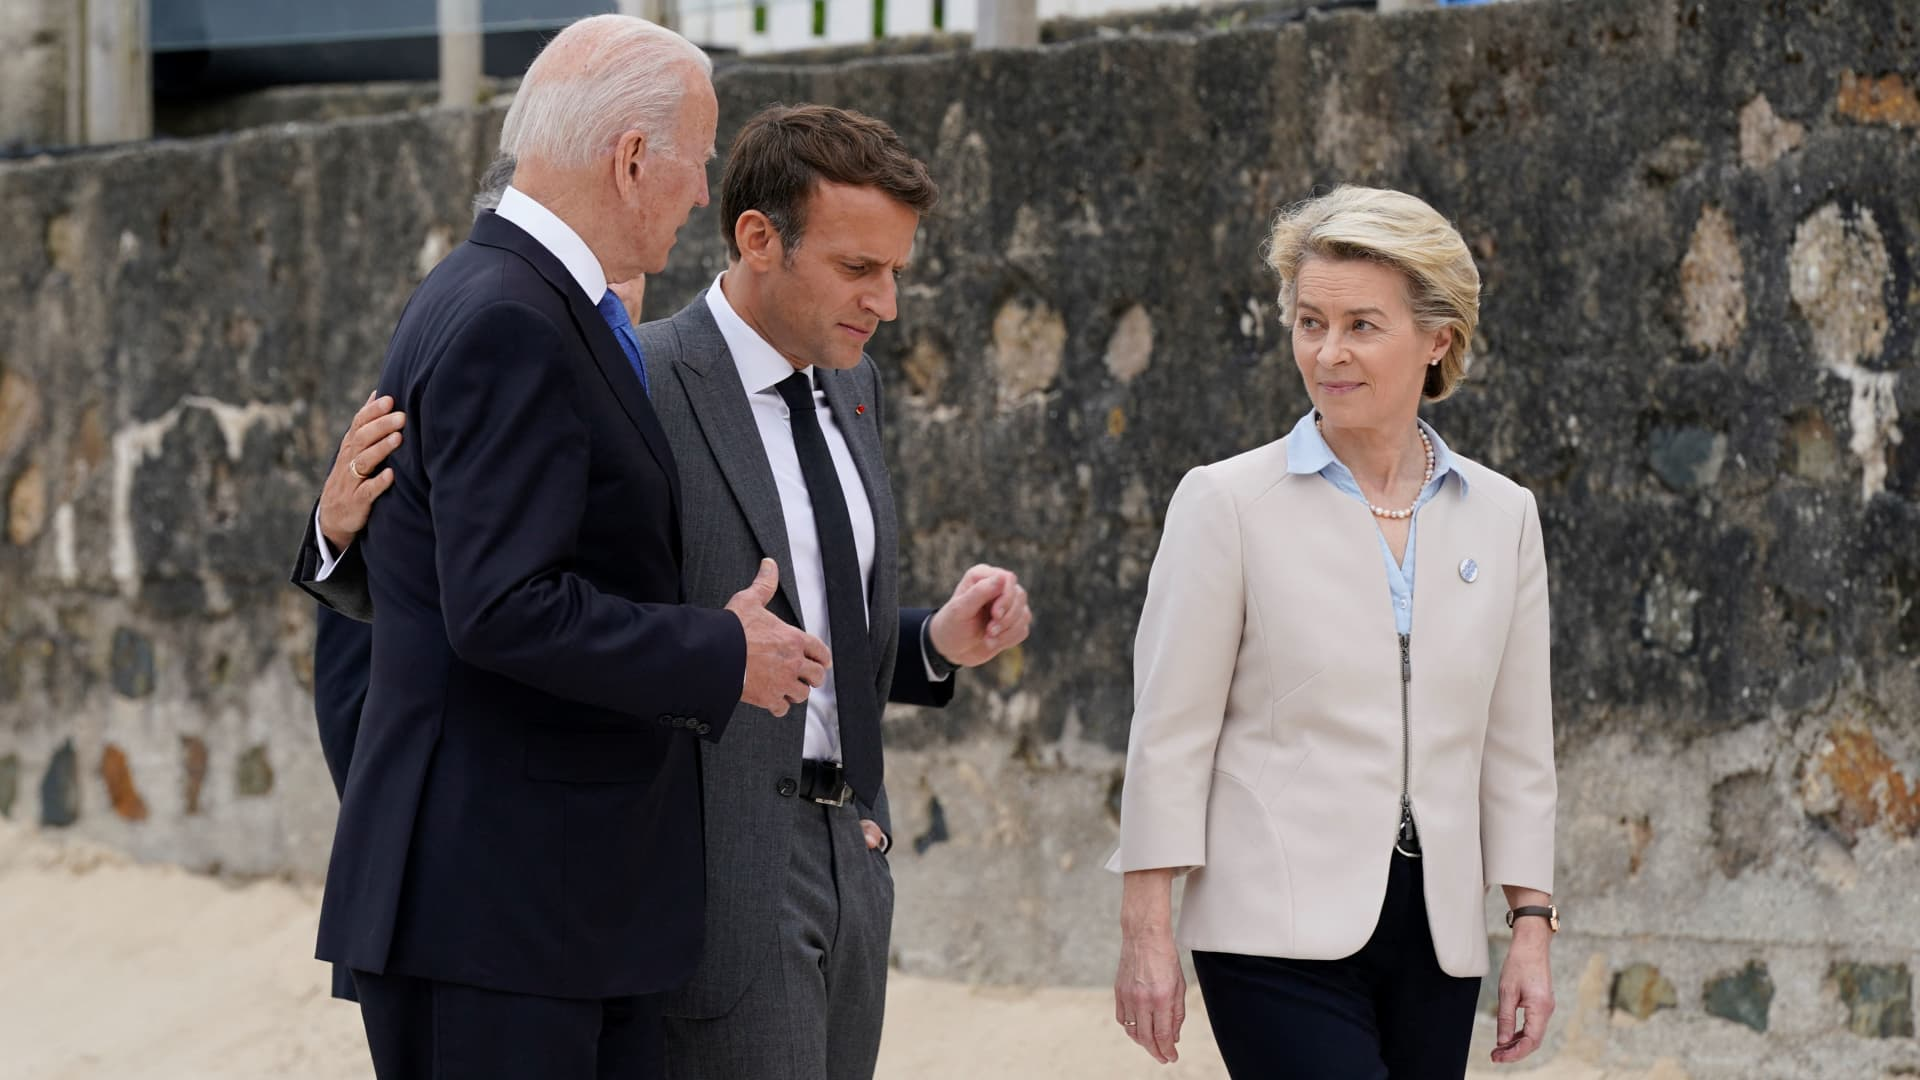 US President Joe Biden (L) and France's President Emmanuel Macron (C) talk with President of the European Commission Ursula von der Leyen after the family photo at the start of the G7 summit in Carbis Bay, Cornwall on June 11, 2021.